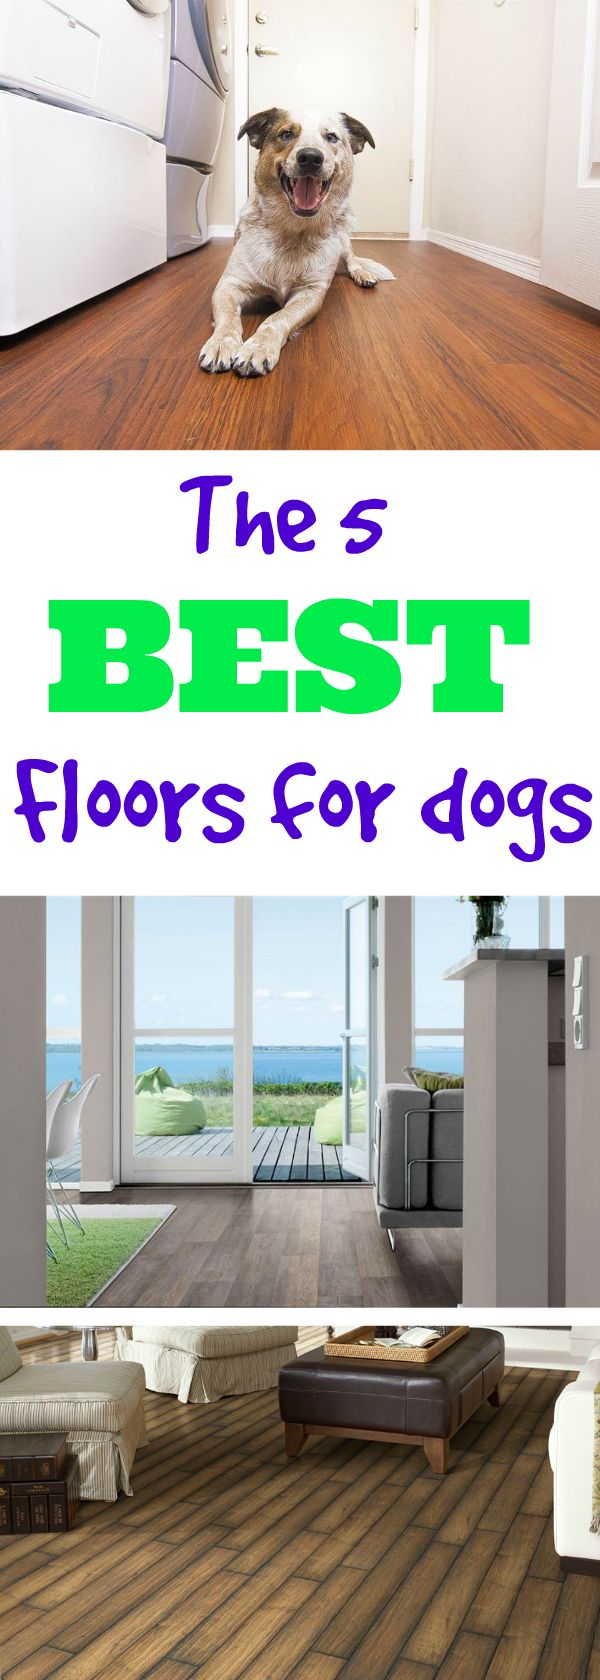 Best 25 flooring options ideas on pinterest flooring for Dog friendly flooring ideas